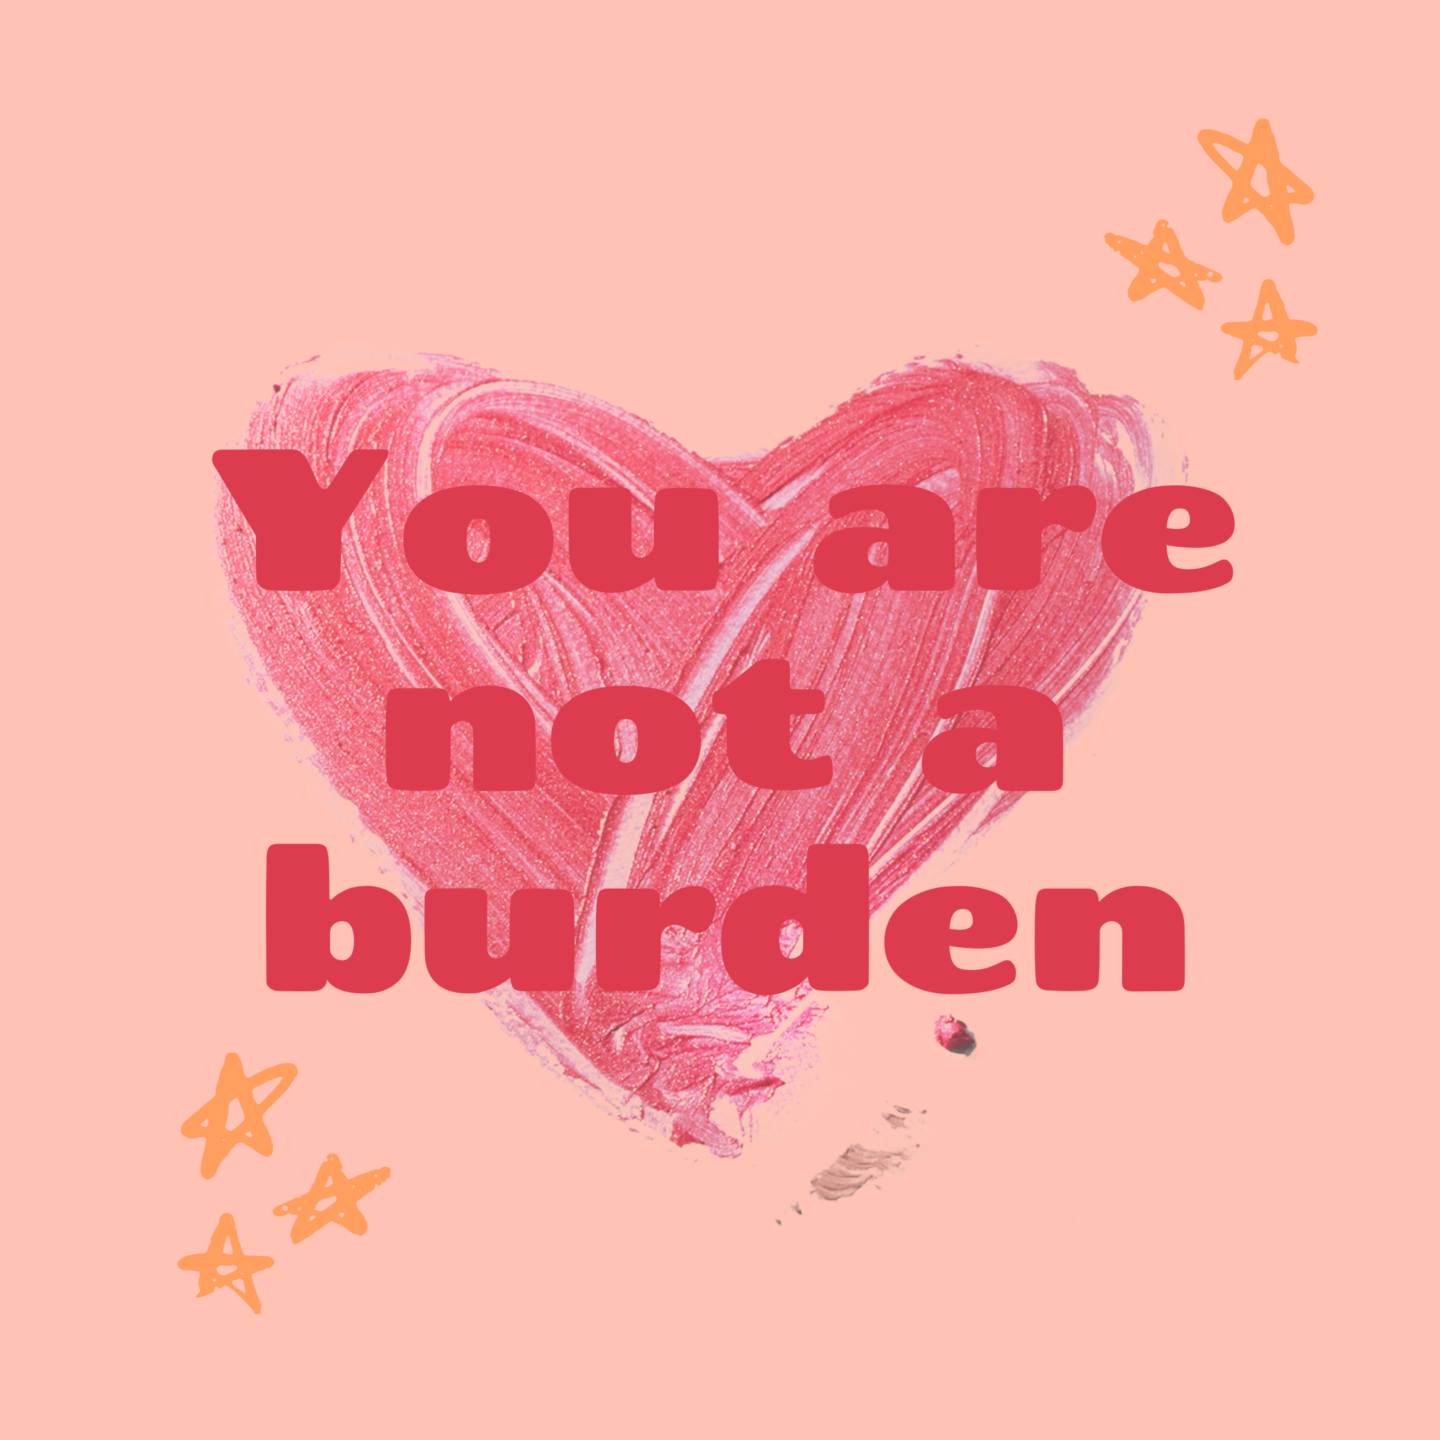 You are not a burden text